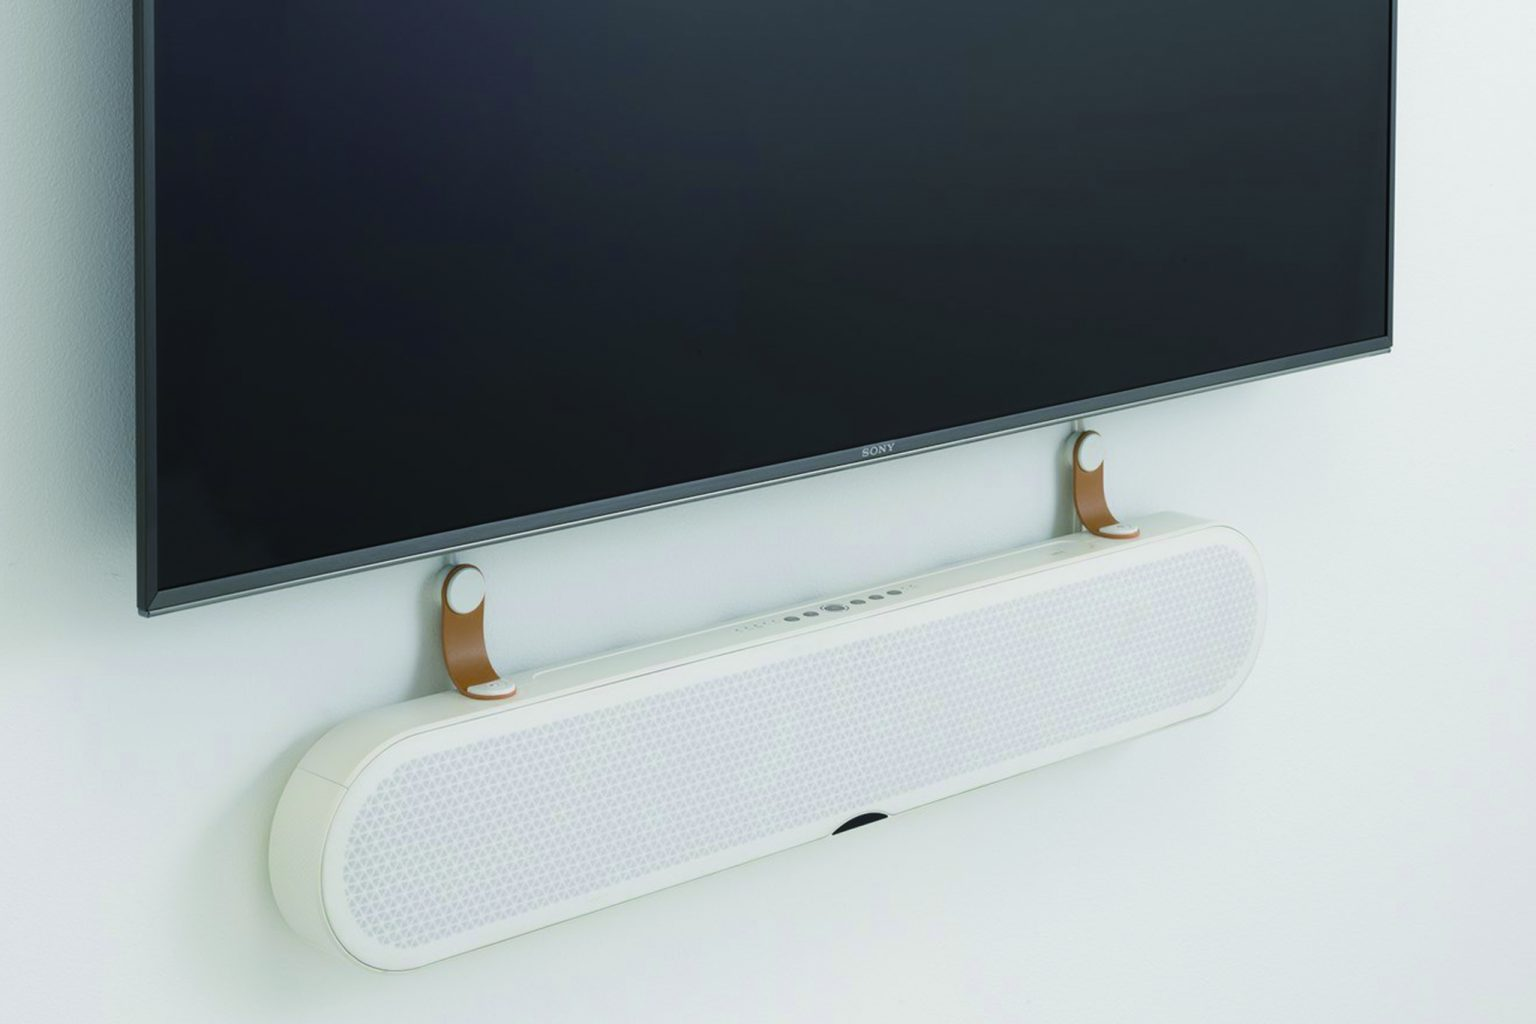 Dali Katch One Soundbar